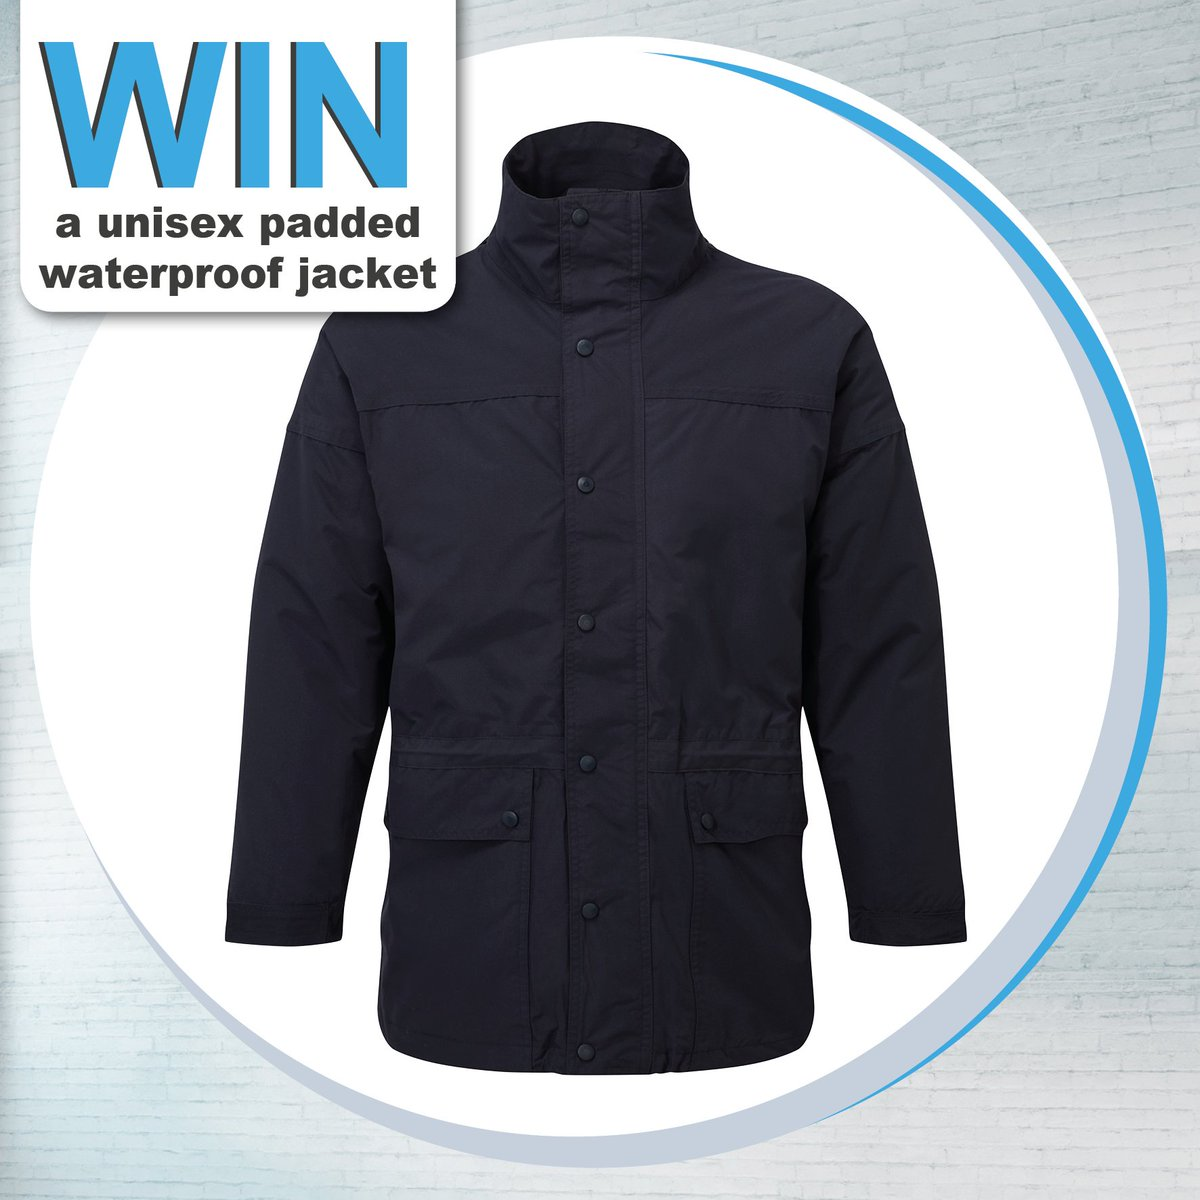 #giveaway time! #win a NEW waterproof jacket! Simply Follow us, Retweet and Like this post. Winner announced Friday 18th! #CompetitionTime #contest #Clothing #jacket<br>http://pic.twitter.com/vCjuyxR1v3